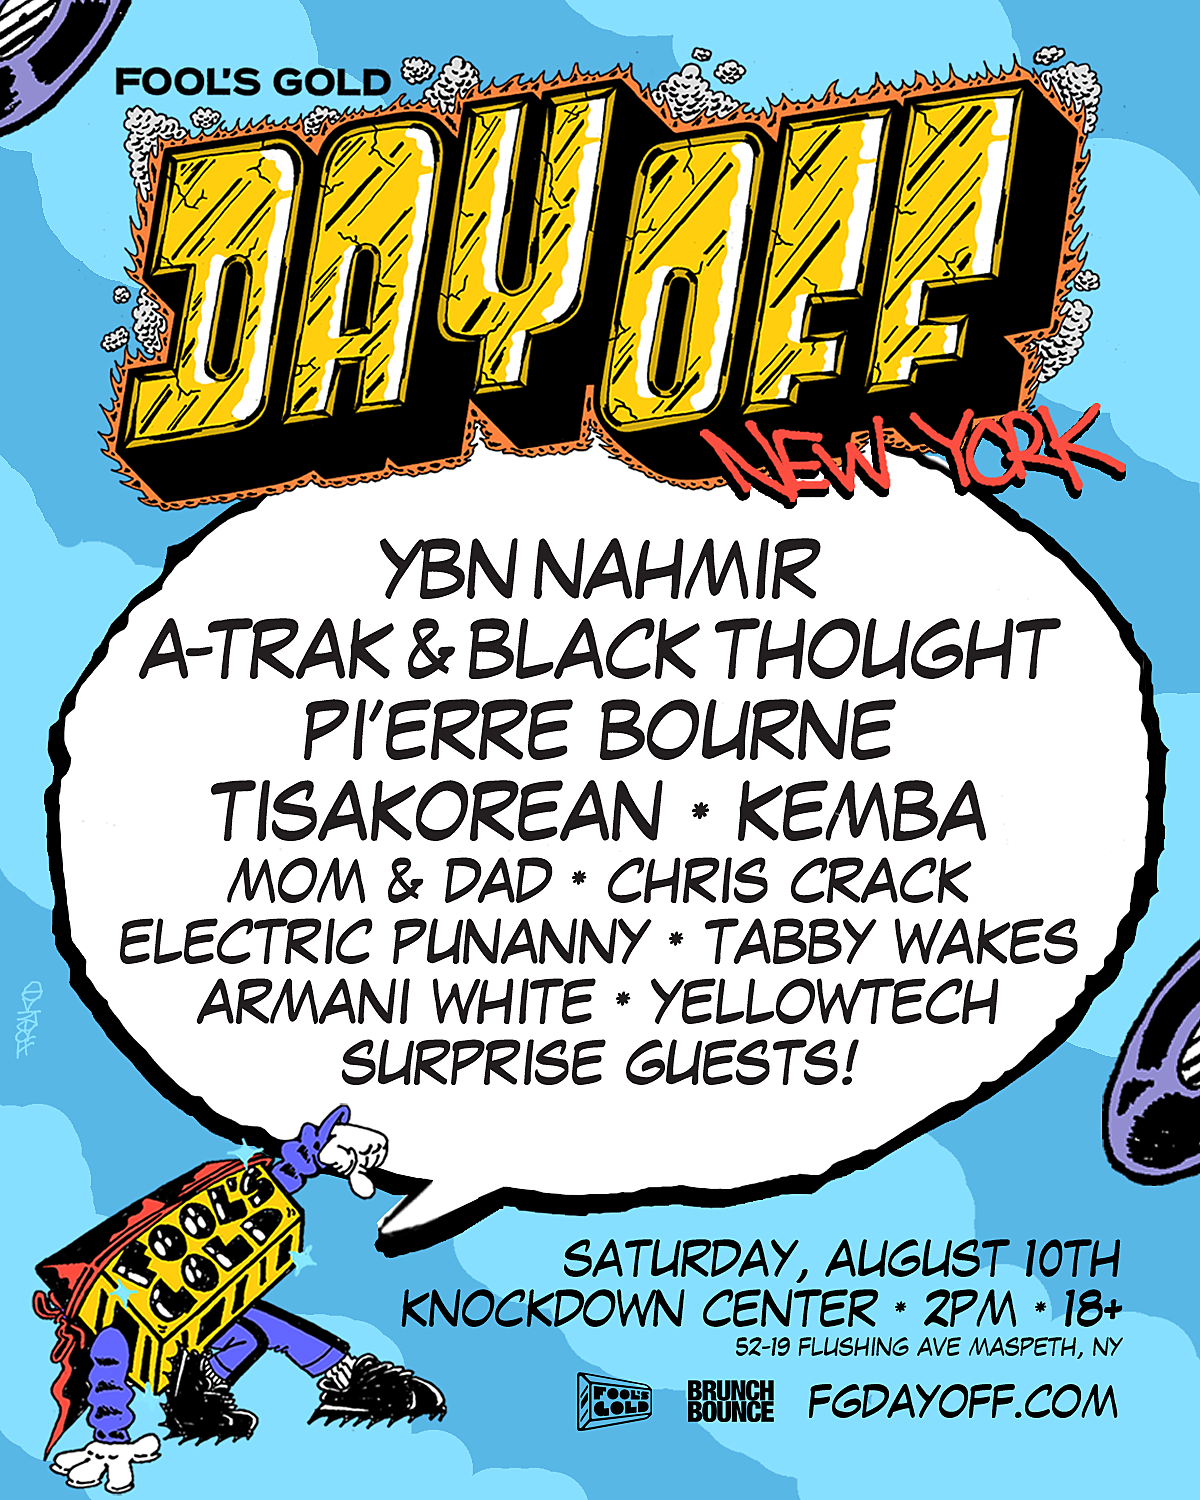 Fool's Gold Day Off NYC is this weekend with YBN Nahmir, A-Trak + Black Thought, and more